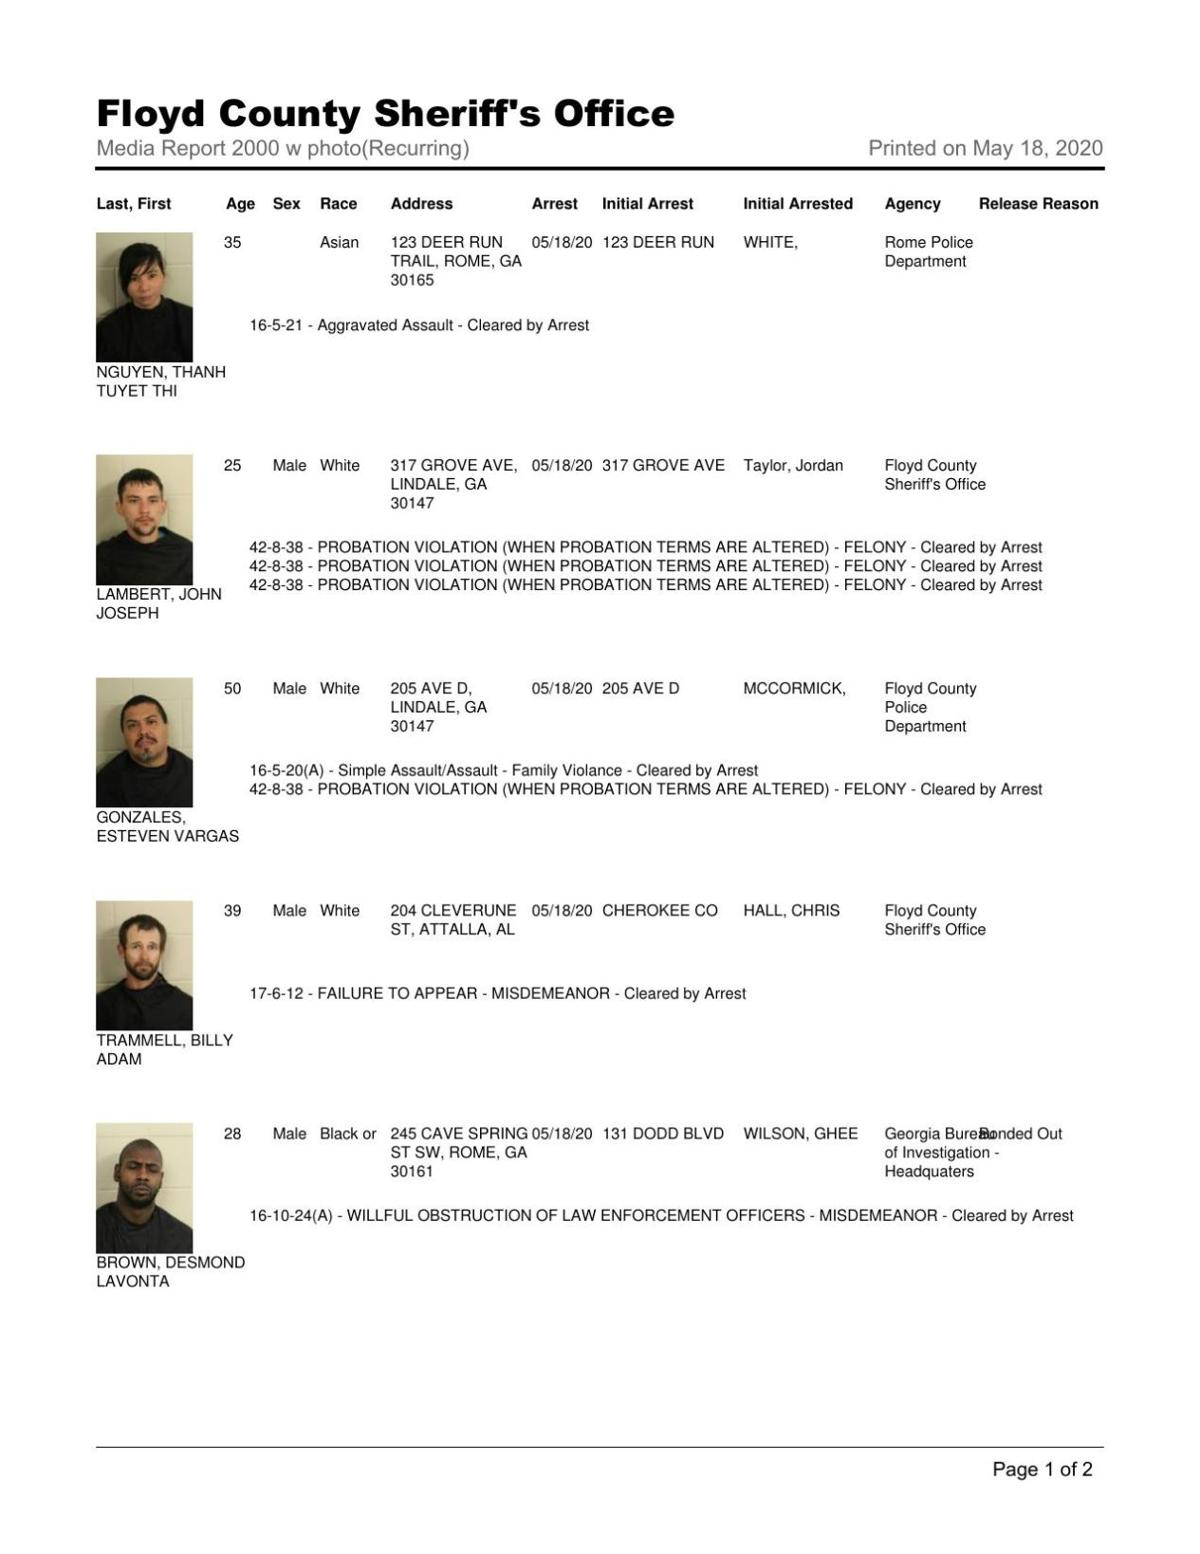 Floyd County Jail Report for 8 p.m. Monday, May 18